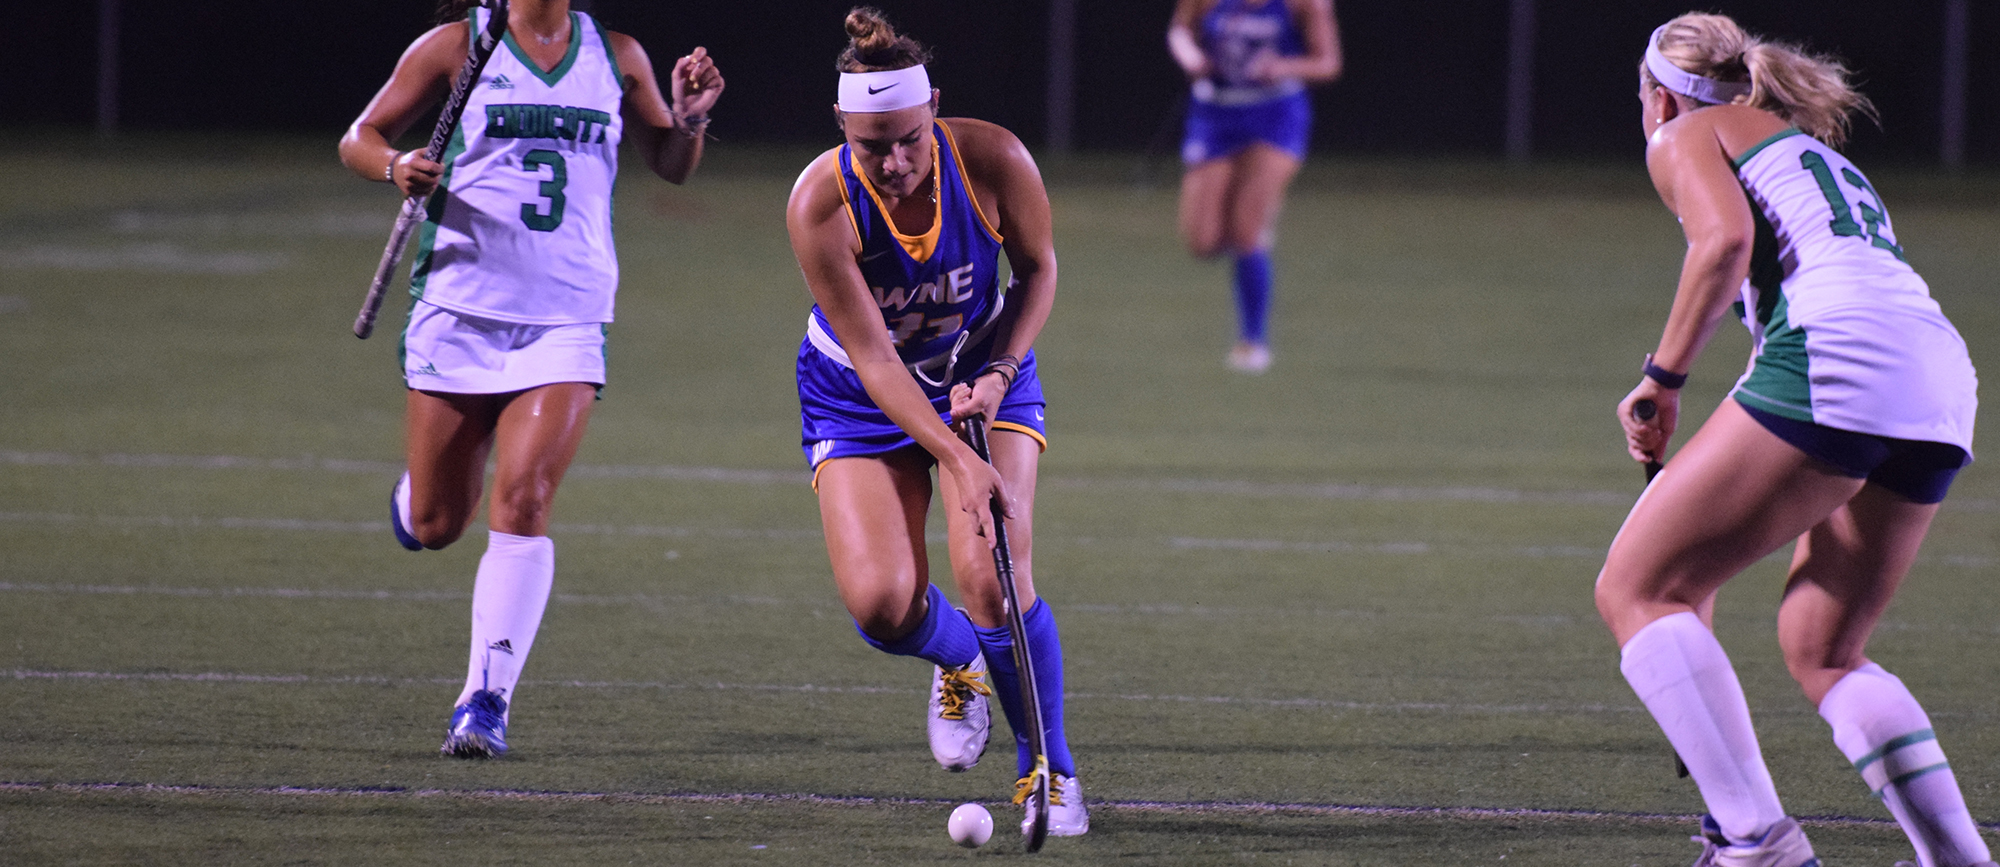 Freshman Taylor Klesyk scored for the third straight game on Tuesday night in Western New England's 2-1 loss to Endicott at Golden Bear Stadium. (Photo by Rachael Margossian)